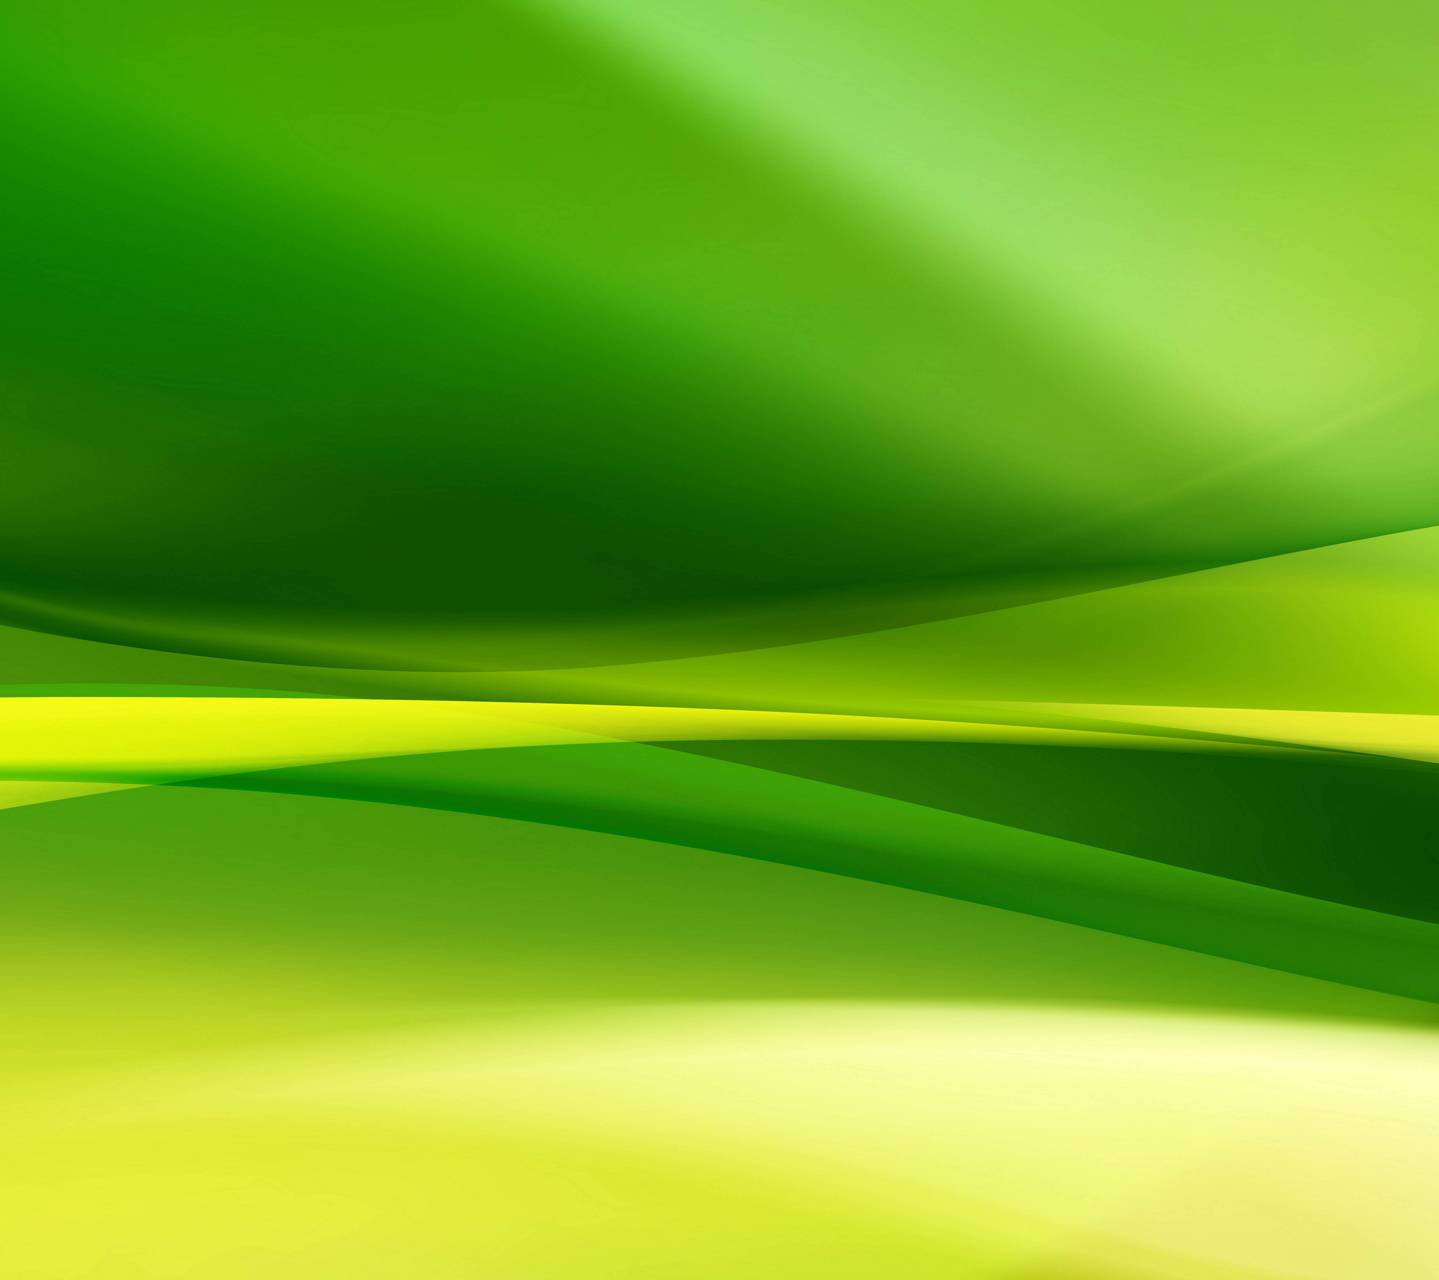 Green Abstract HD Wallpaper By _Mr_Blur_